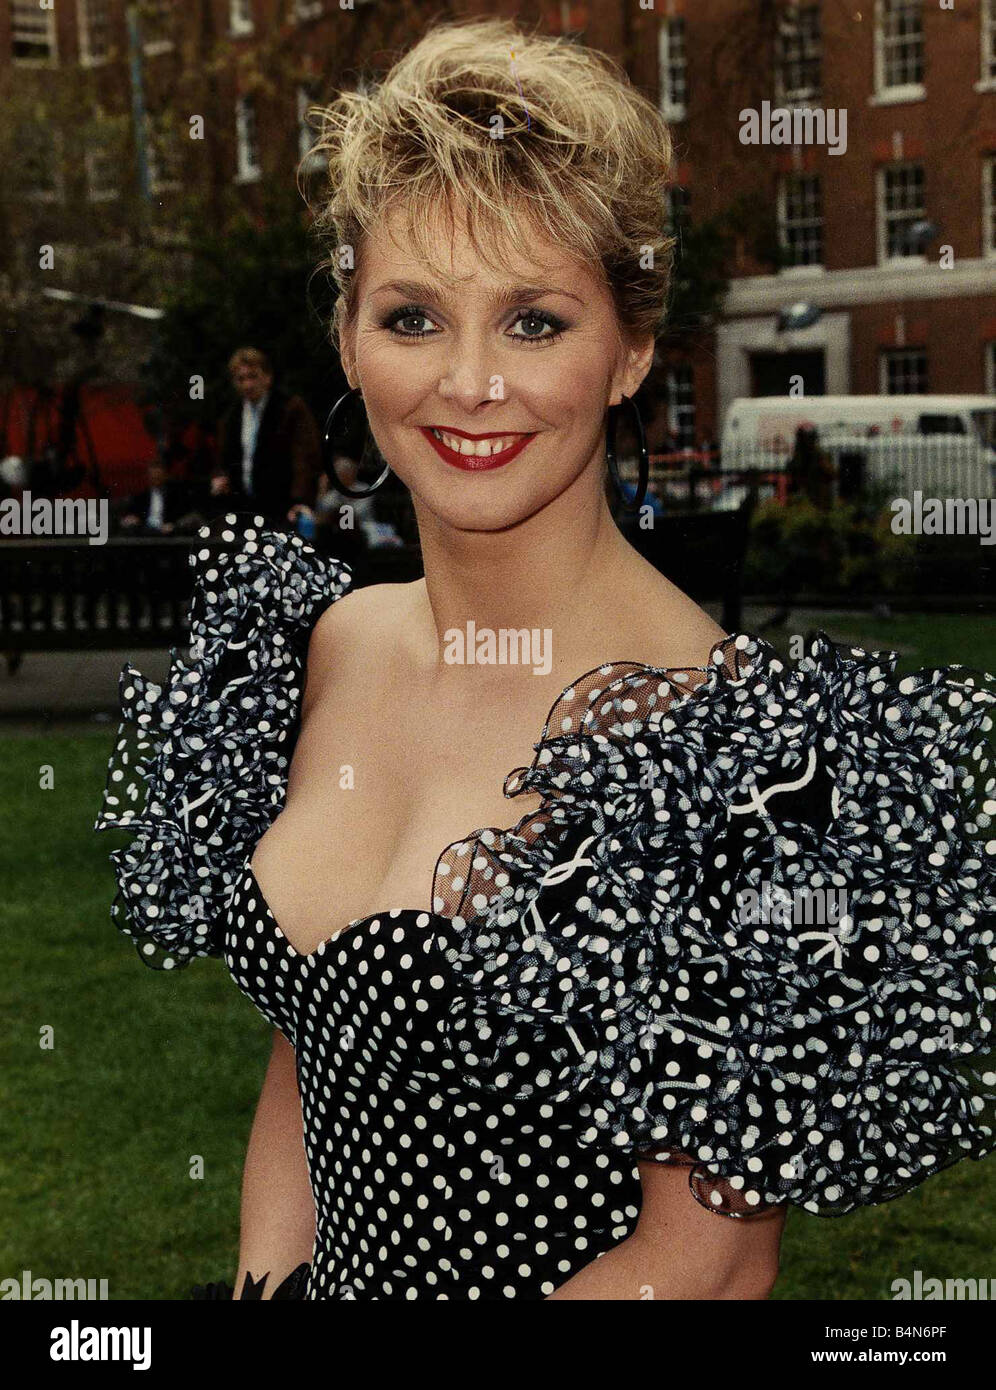 Cheryl Baker Nude Photos 98